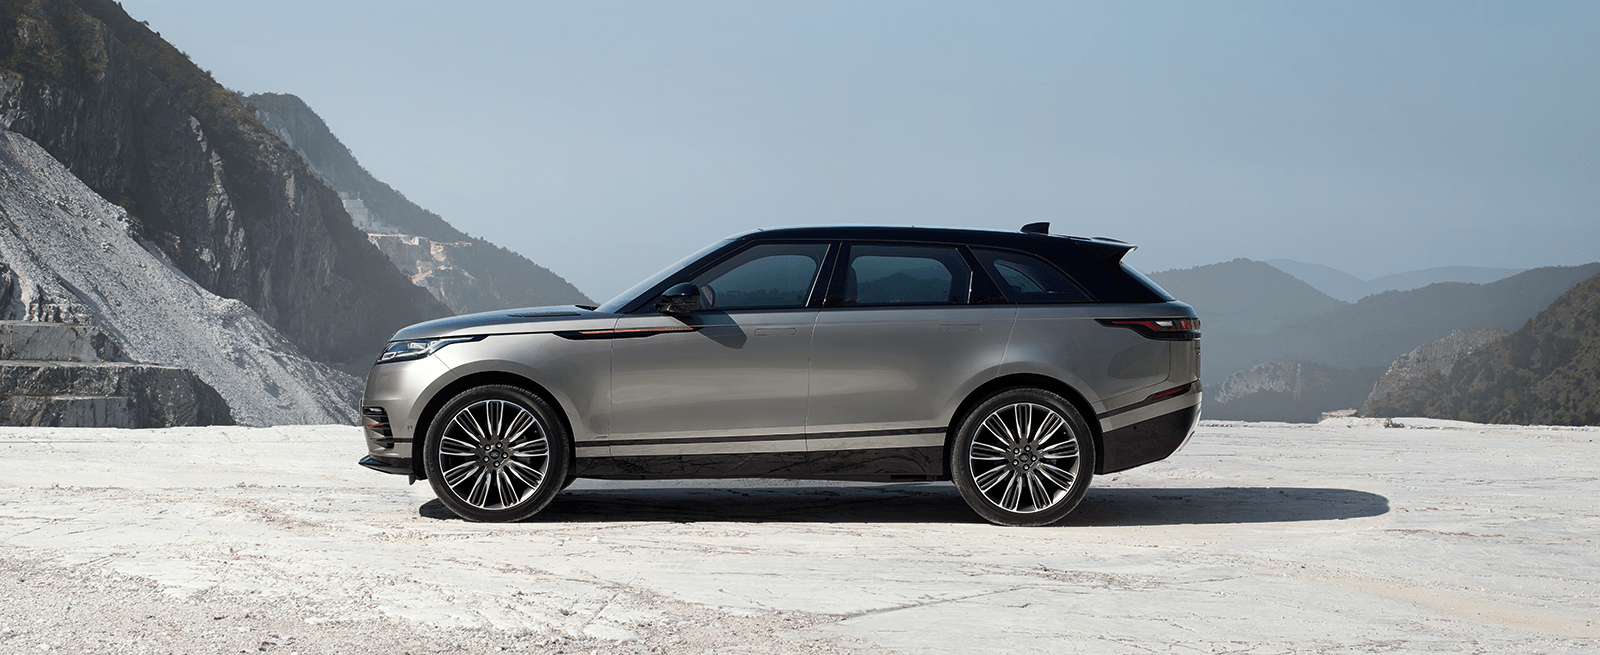 Silver Range Rover Velar Parked with A Backdrop of Mountains